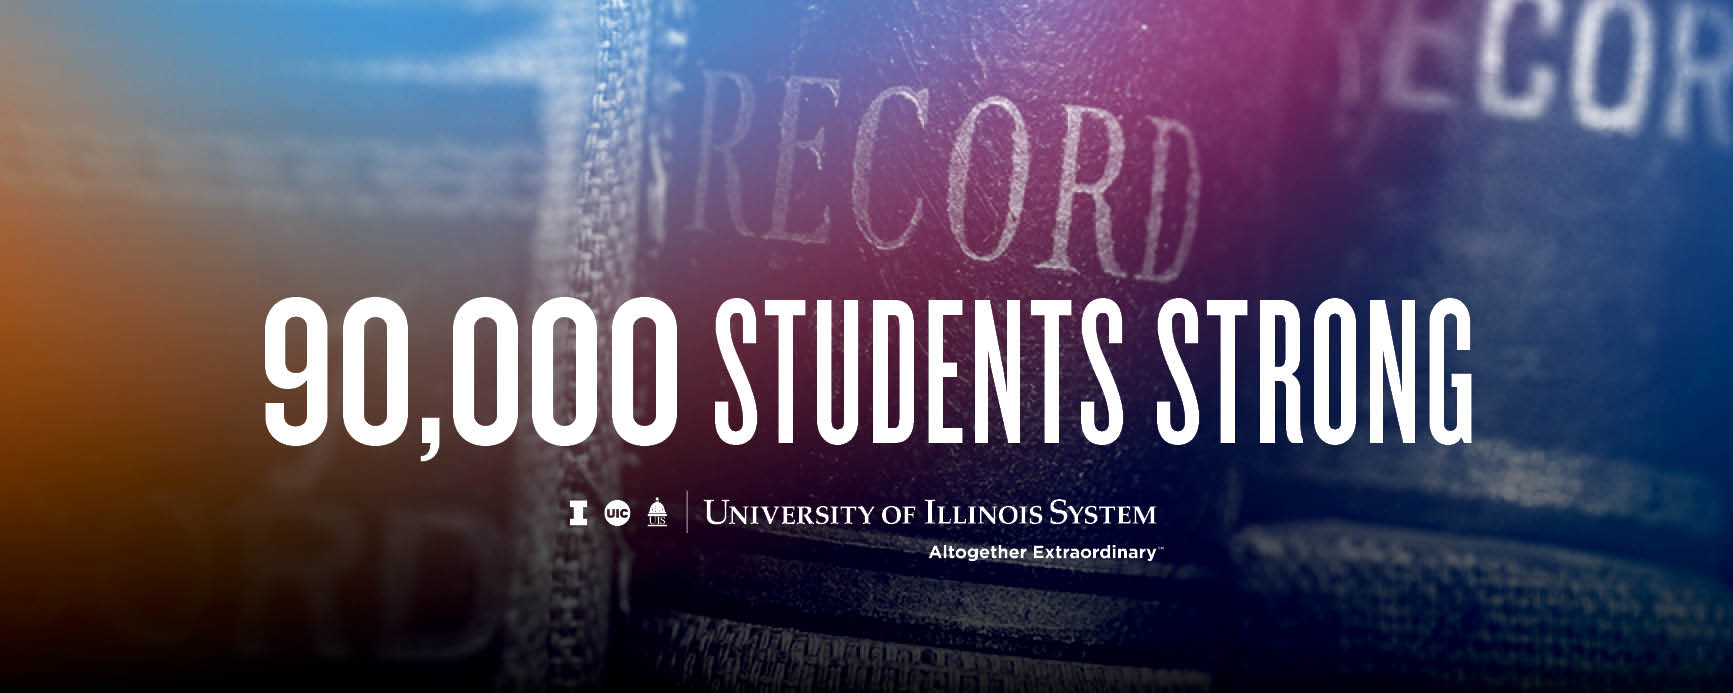 90,000 students strong, books in background, U of I System logo